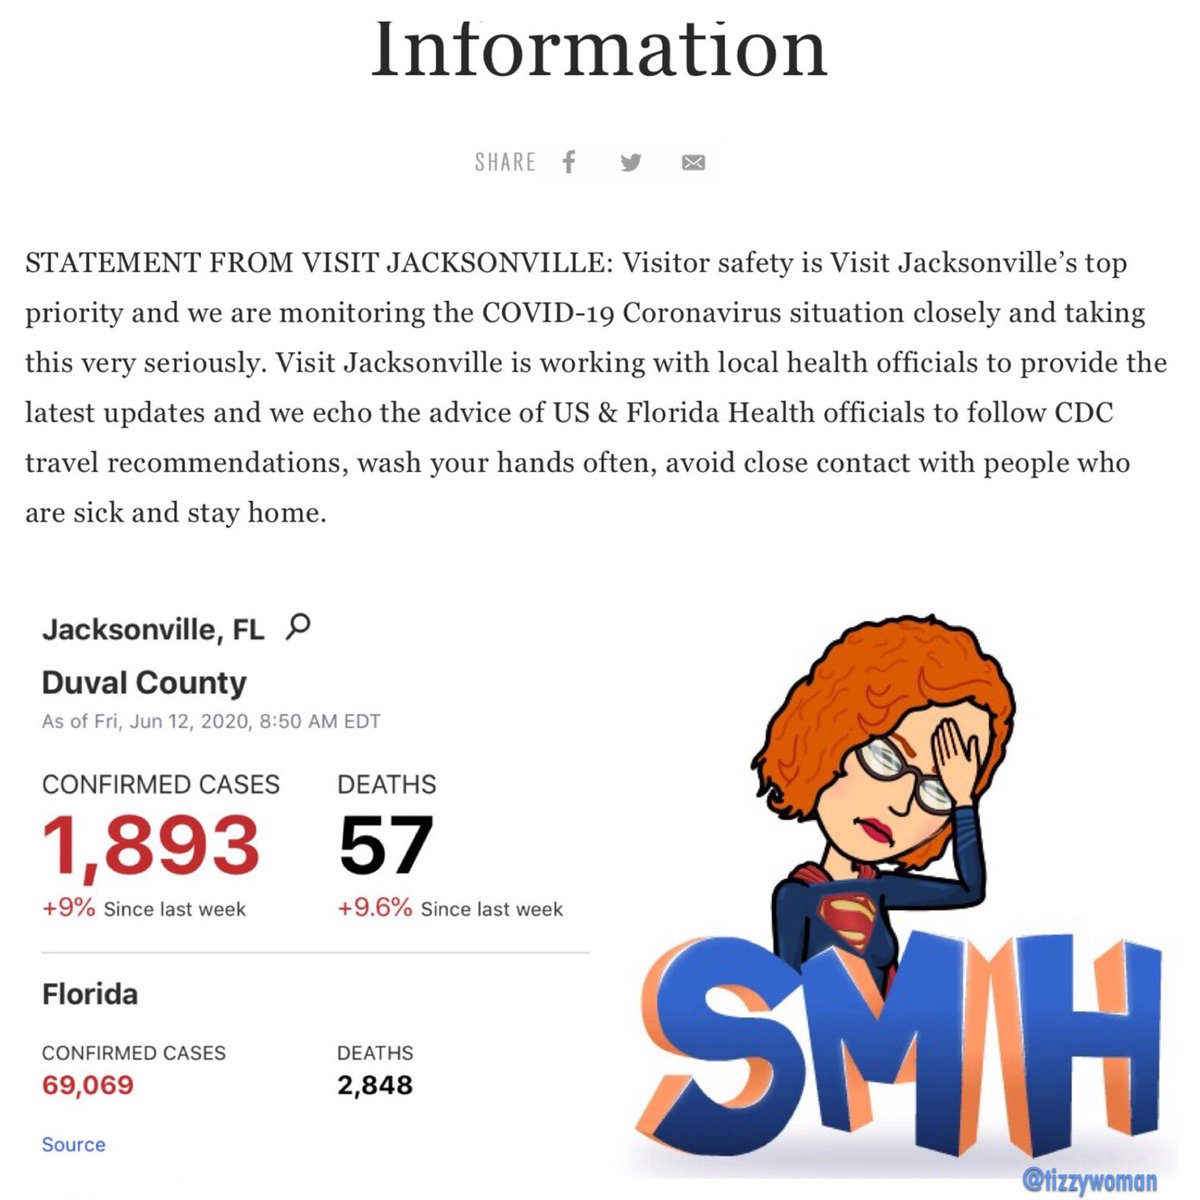 What could possibly go wrong?   #TrumpDeathToll100K     #DemCastFL #DemCast     https://www. firstcoastnews.com/article/news/l ocal/republican-national-convention-in-jacksonville/77-5510ea0c-3ec7-411c-afd4-e3d2825de7c0  … <br>http://pic.twitter.com/I7Vv6kuxPD